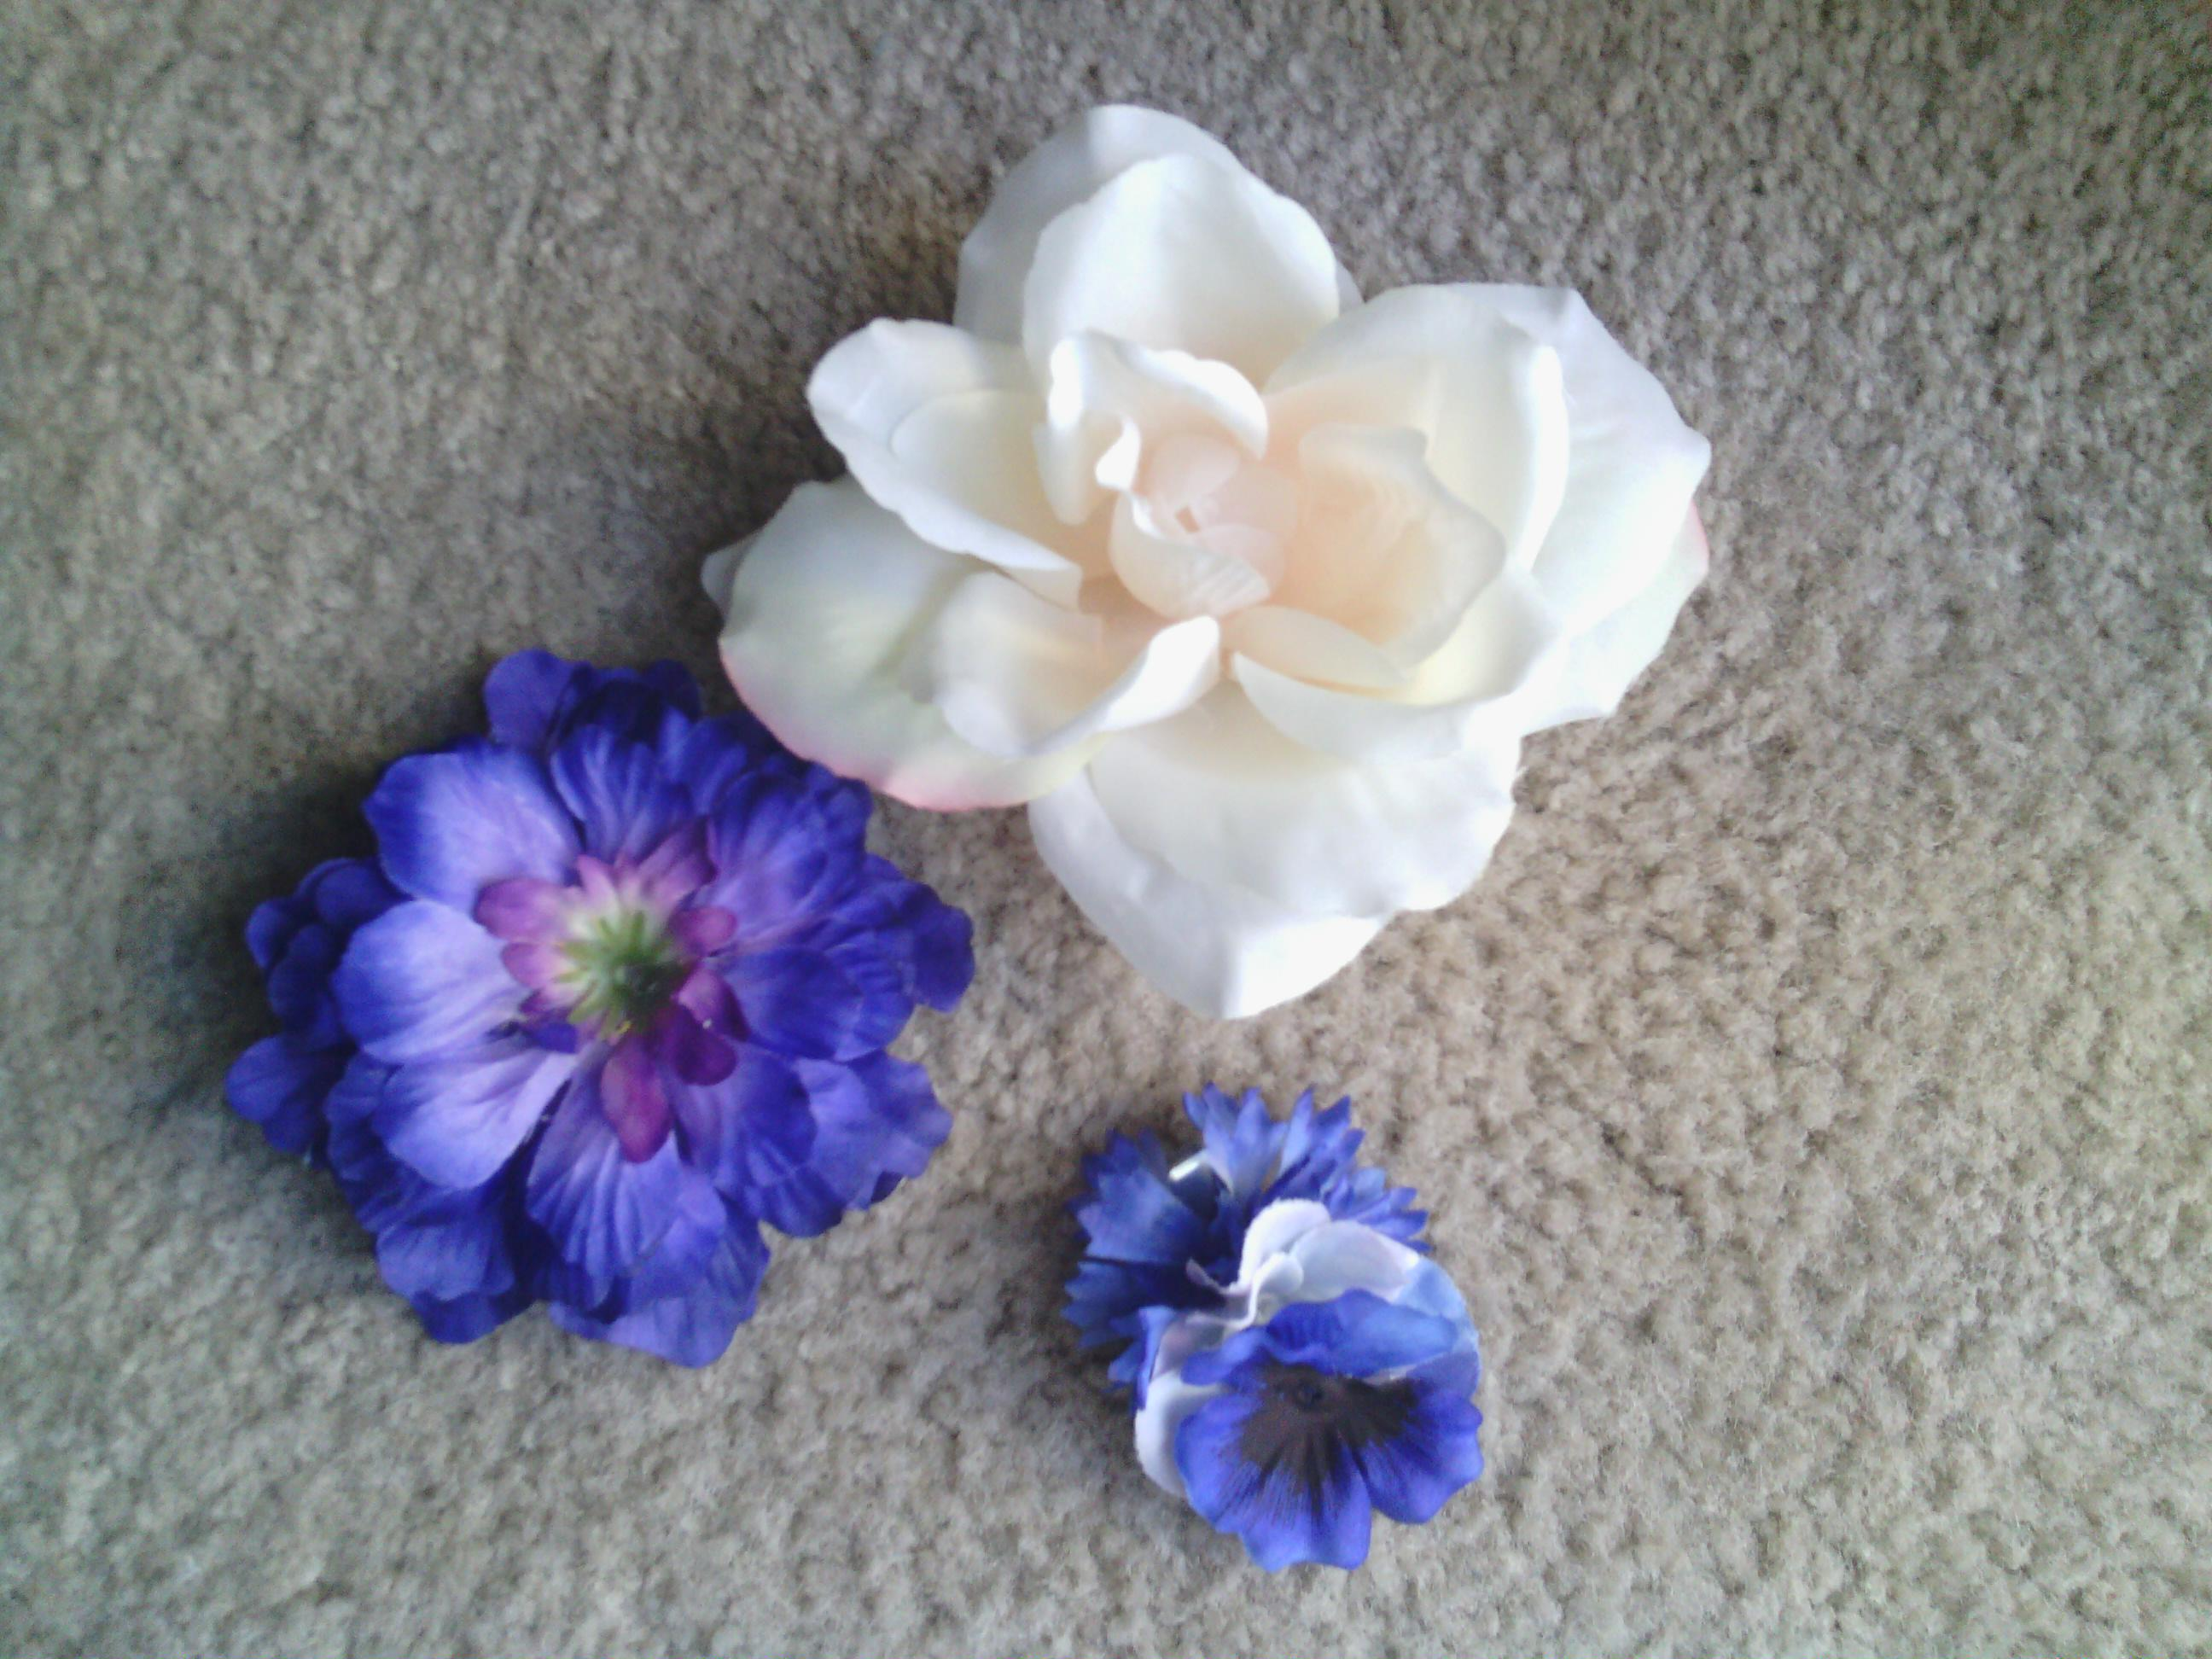 Nikkis Knitting And More Flower Hair Clip Small White And Blue